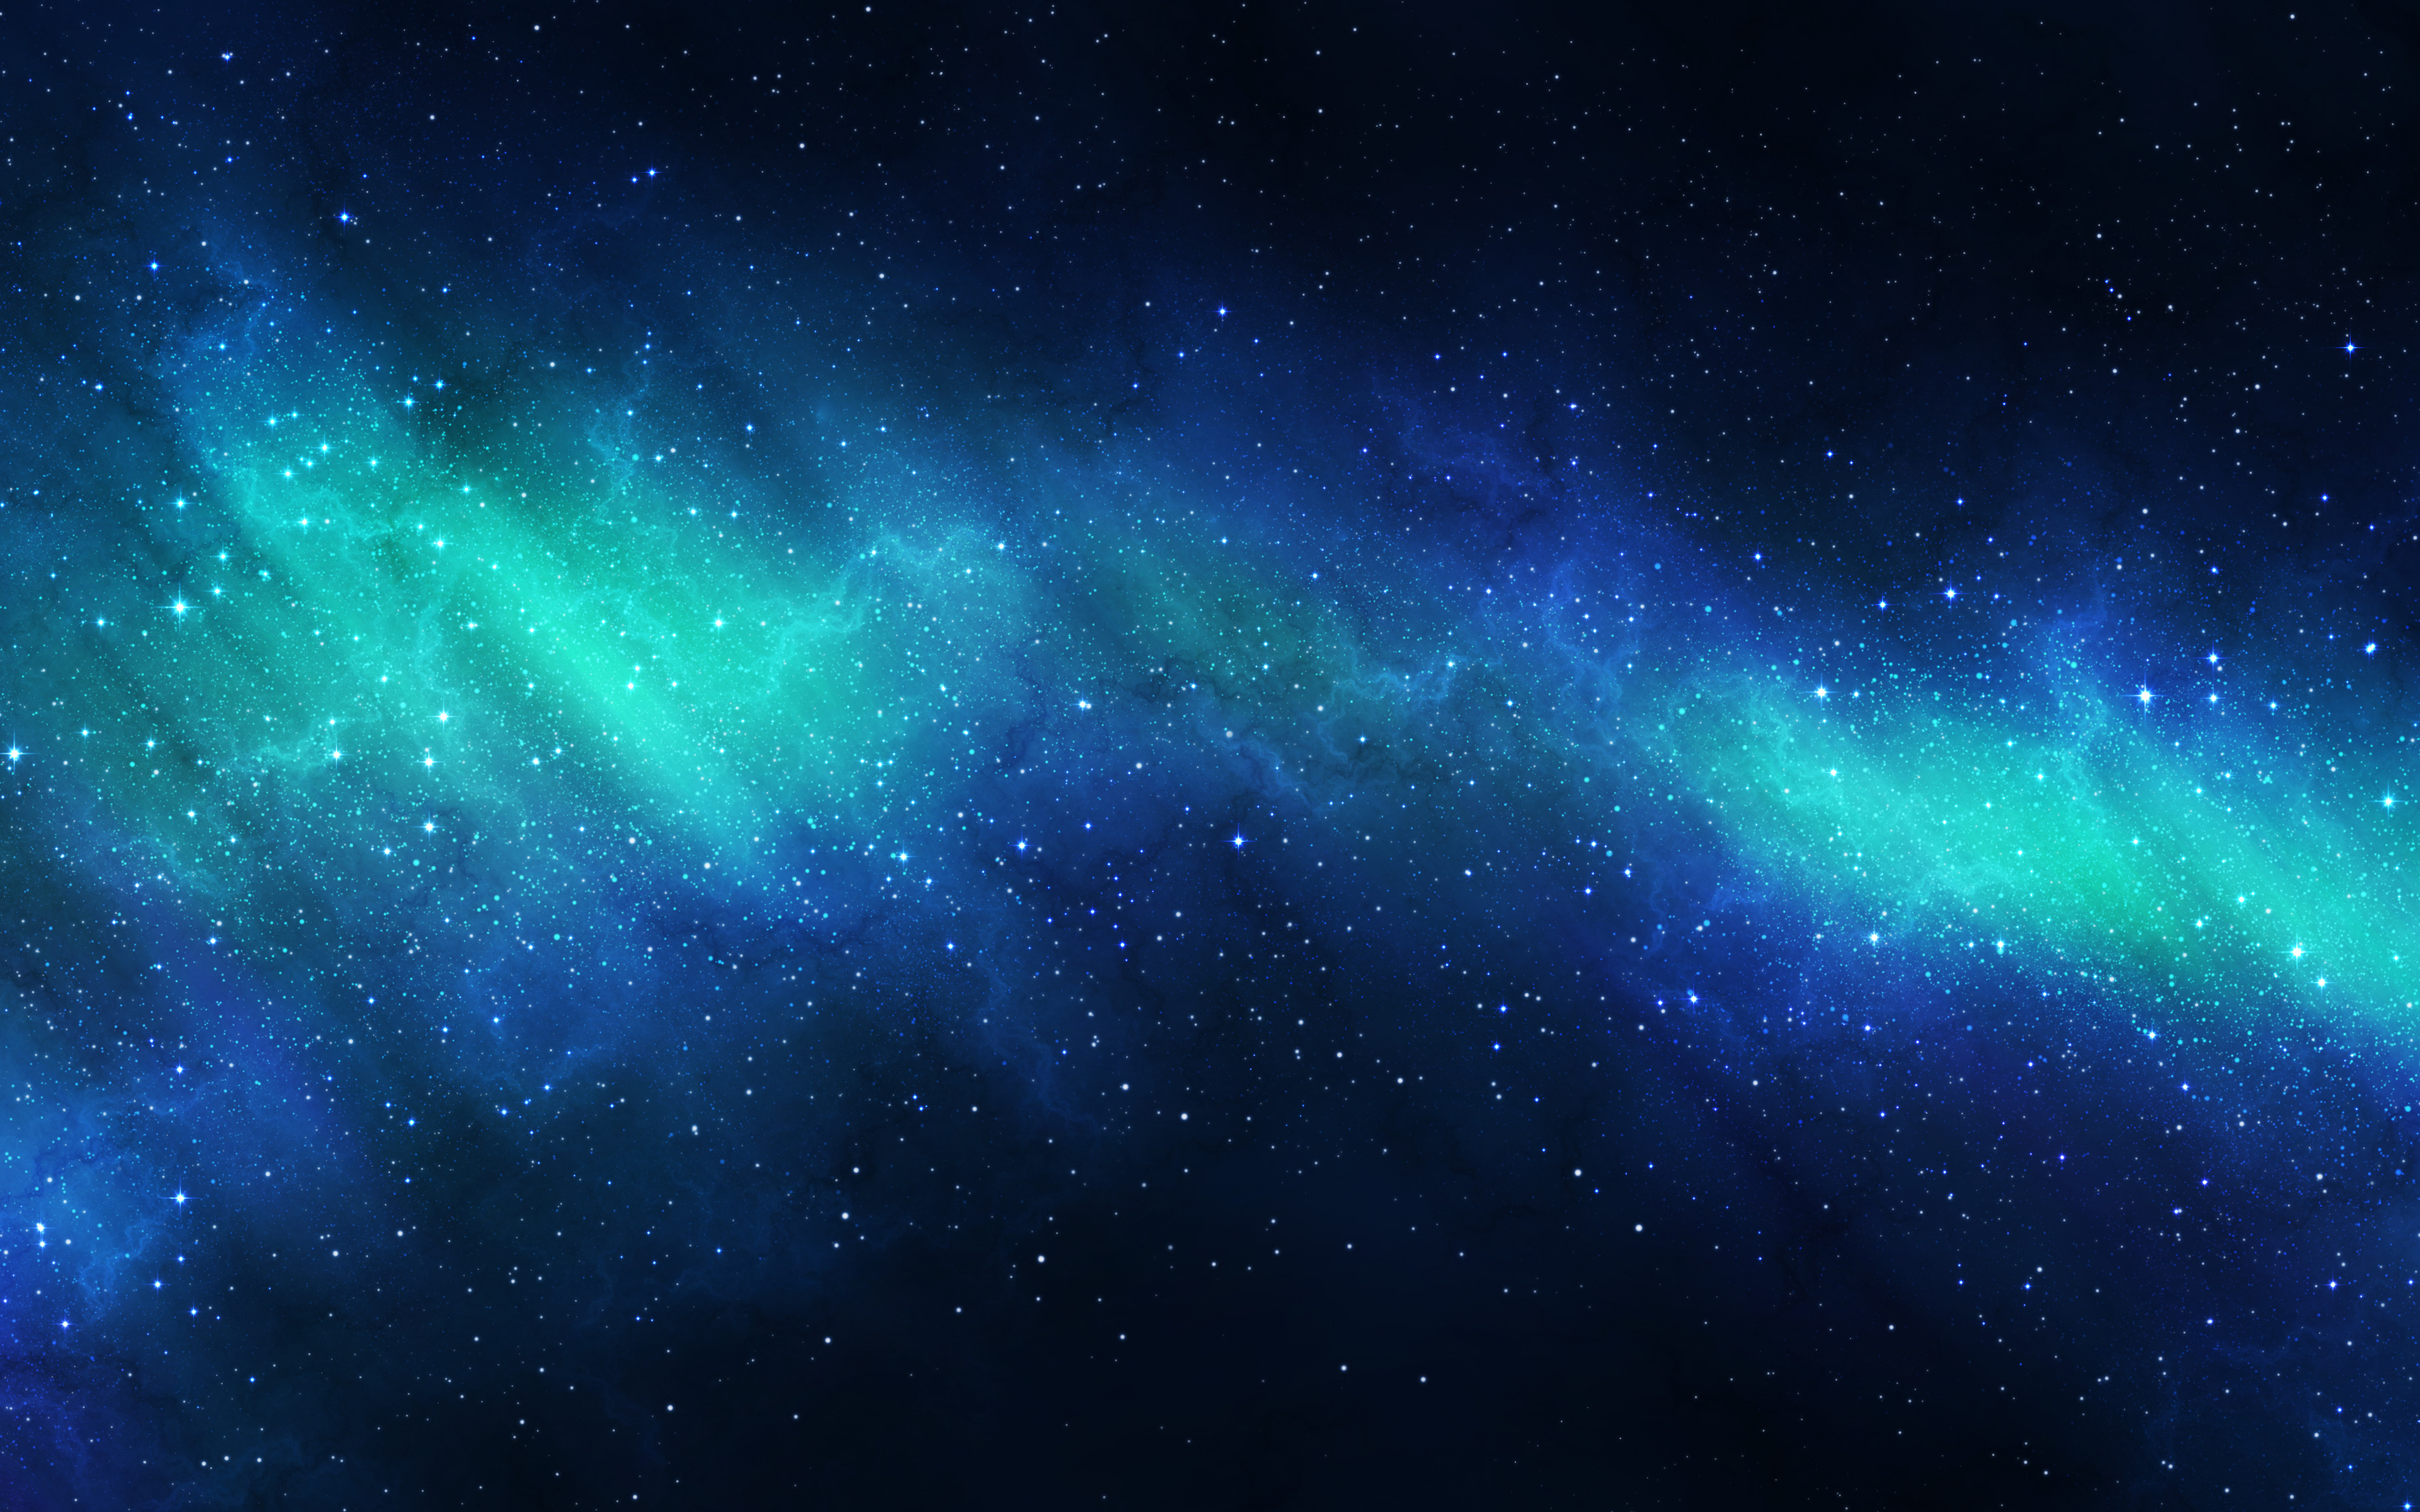 2880x1800 Space Dreams 4k Macbook Pro Retina Hd 4k Wallpapers Images Backgrounds Photos And Pictures